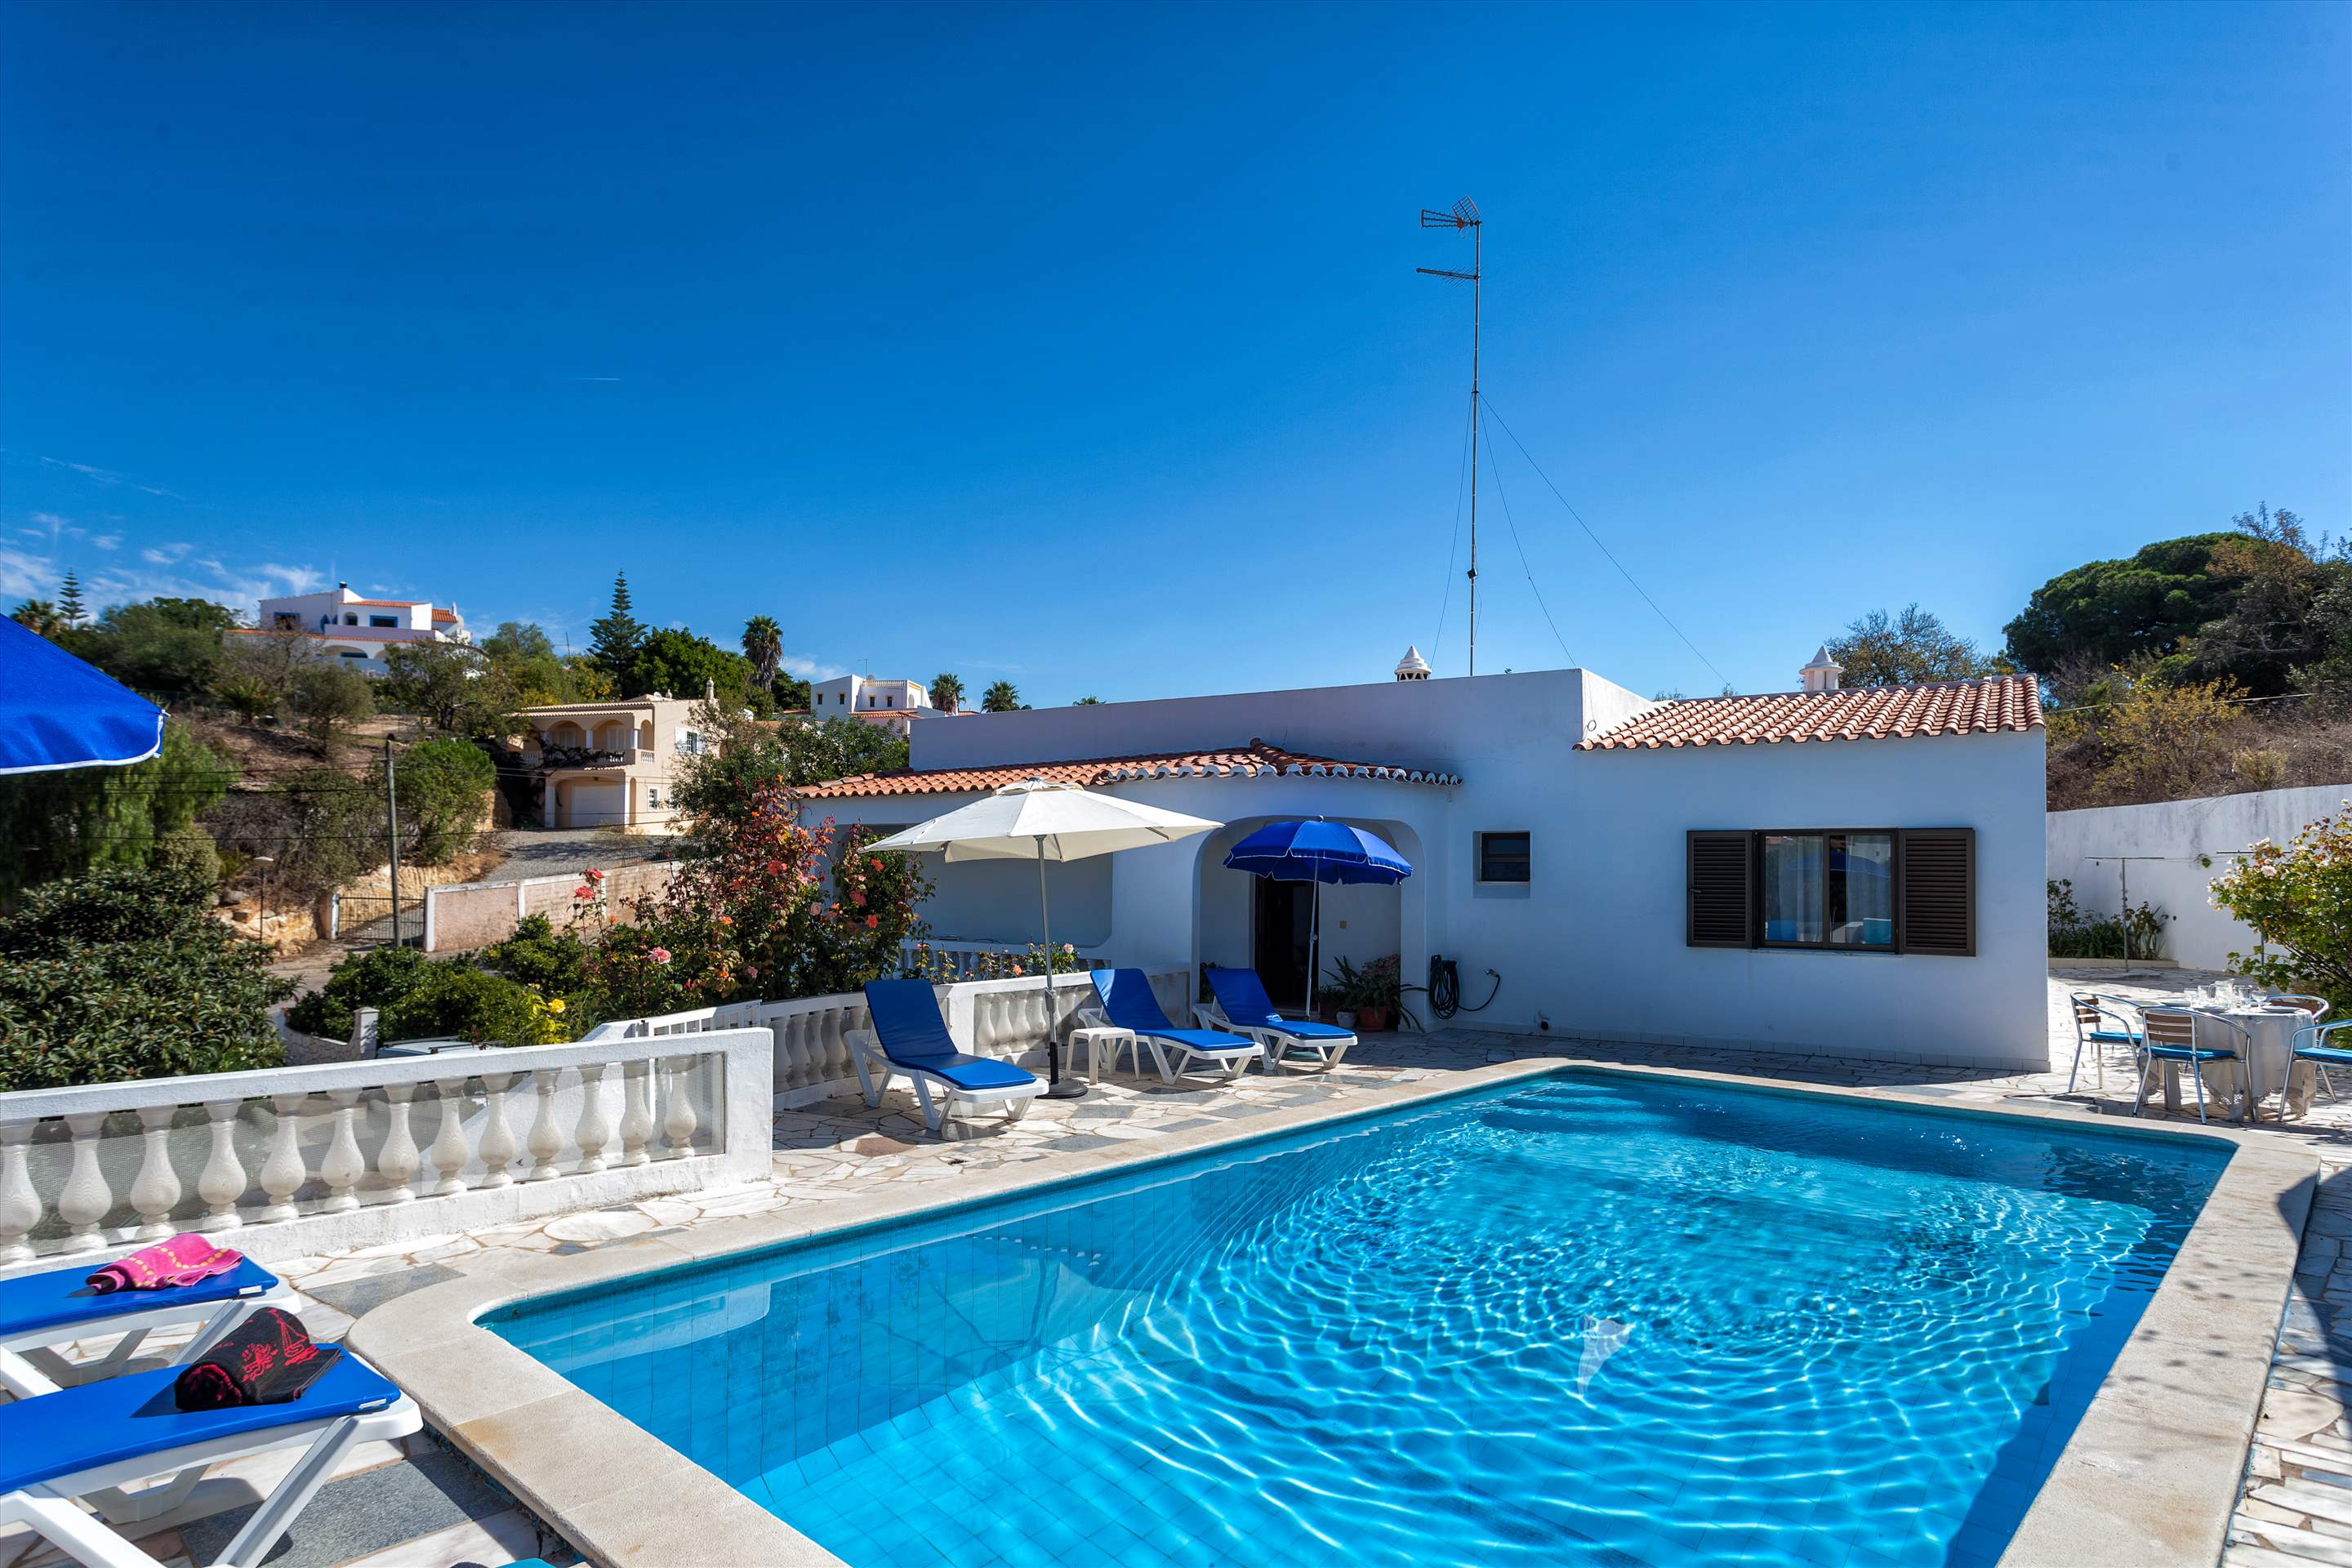 Villa Do Cerro, 3 bedroom villa in Carvoeiro Area, Algarve